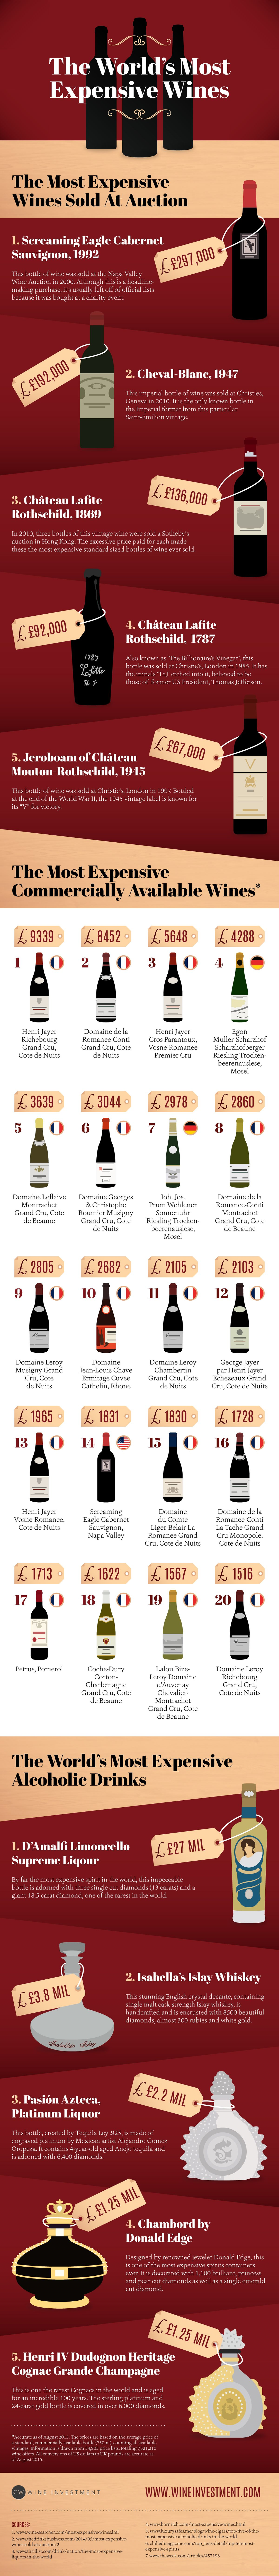 The World's Most Expensive Wines